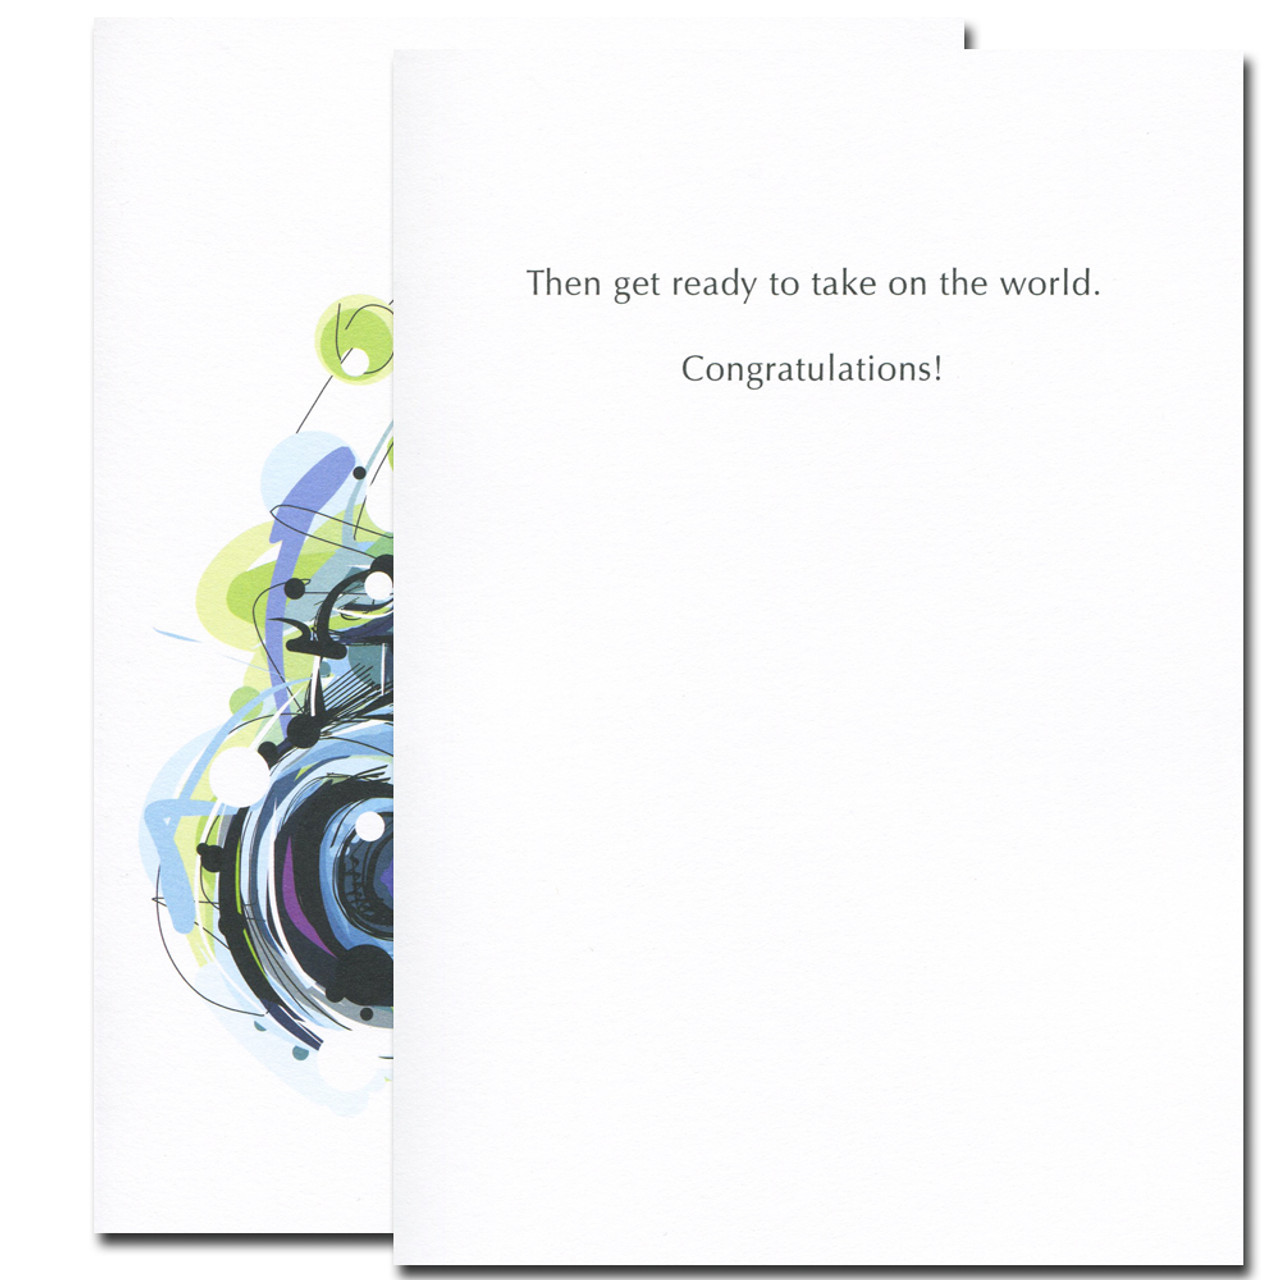 Take Pictures Congratulations card inside reads: Then get ready to take on the world. Congratulations!